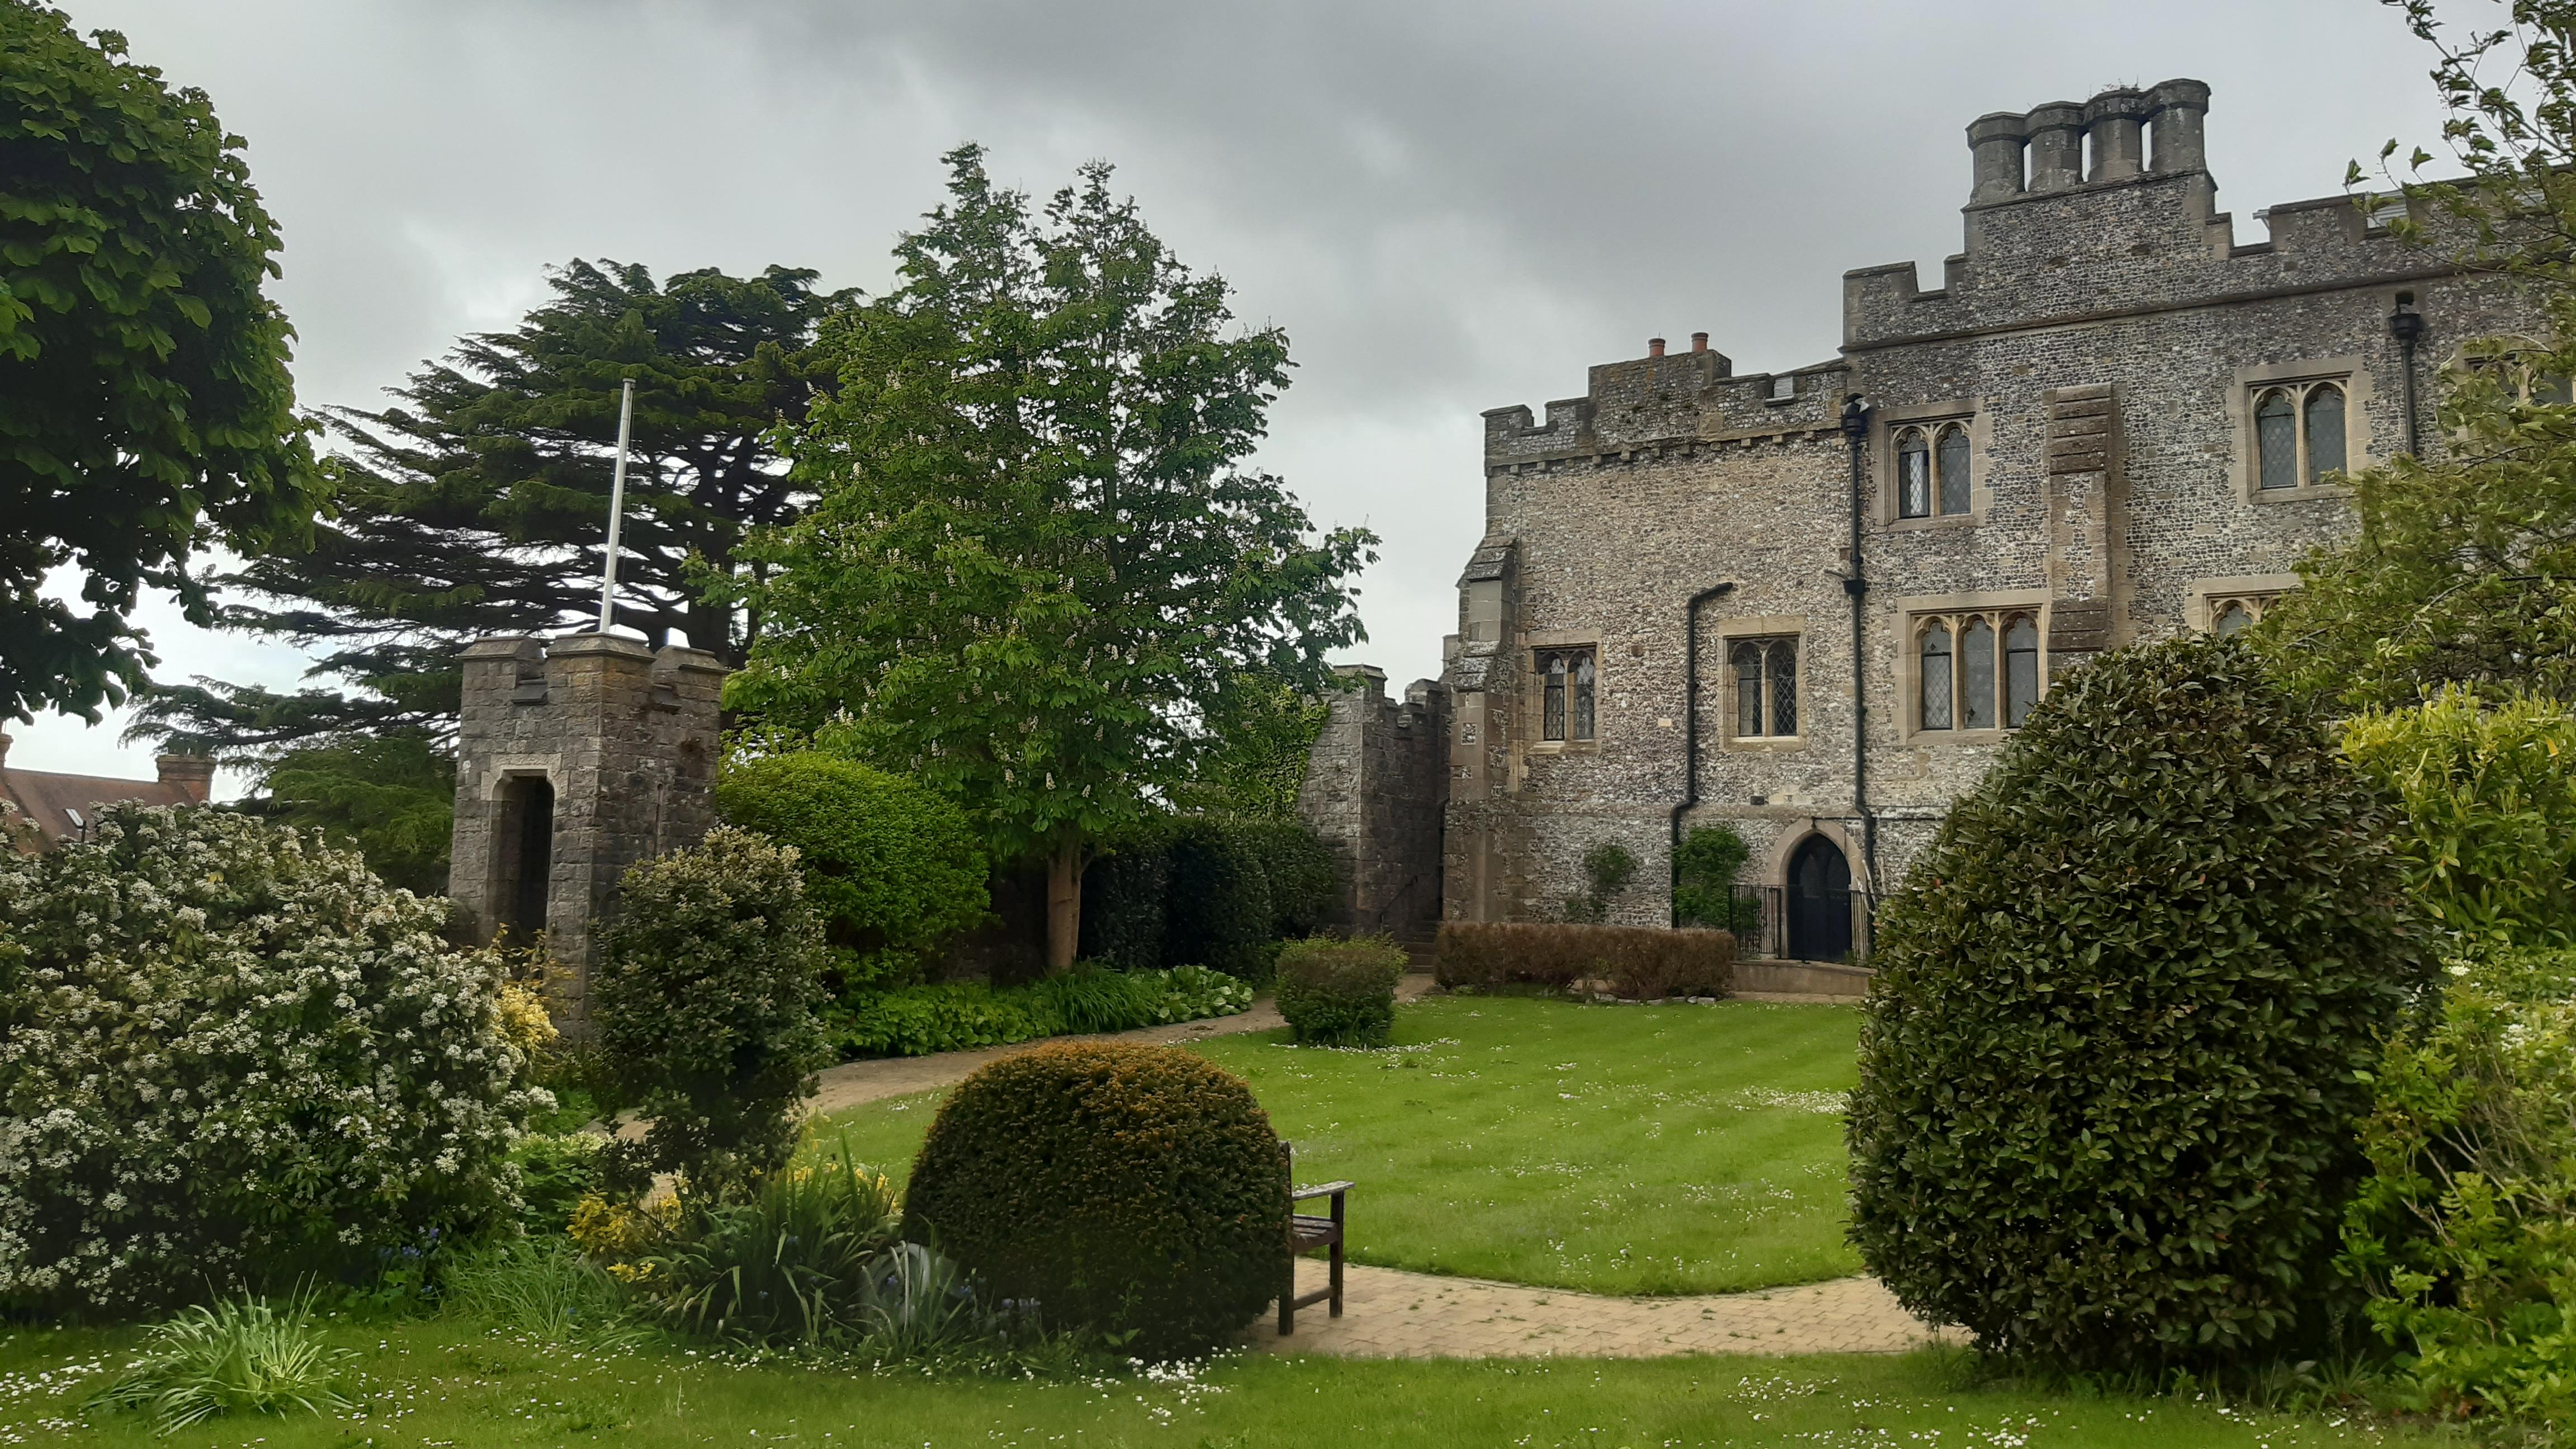 St Wilfrid's Priory from the garden